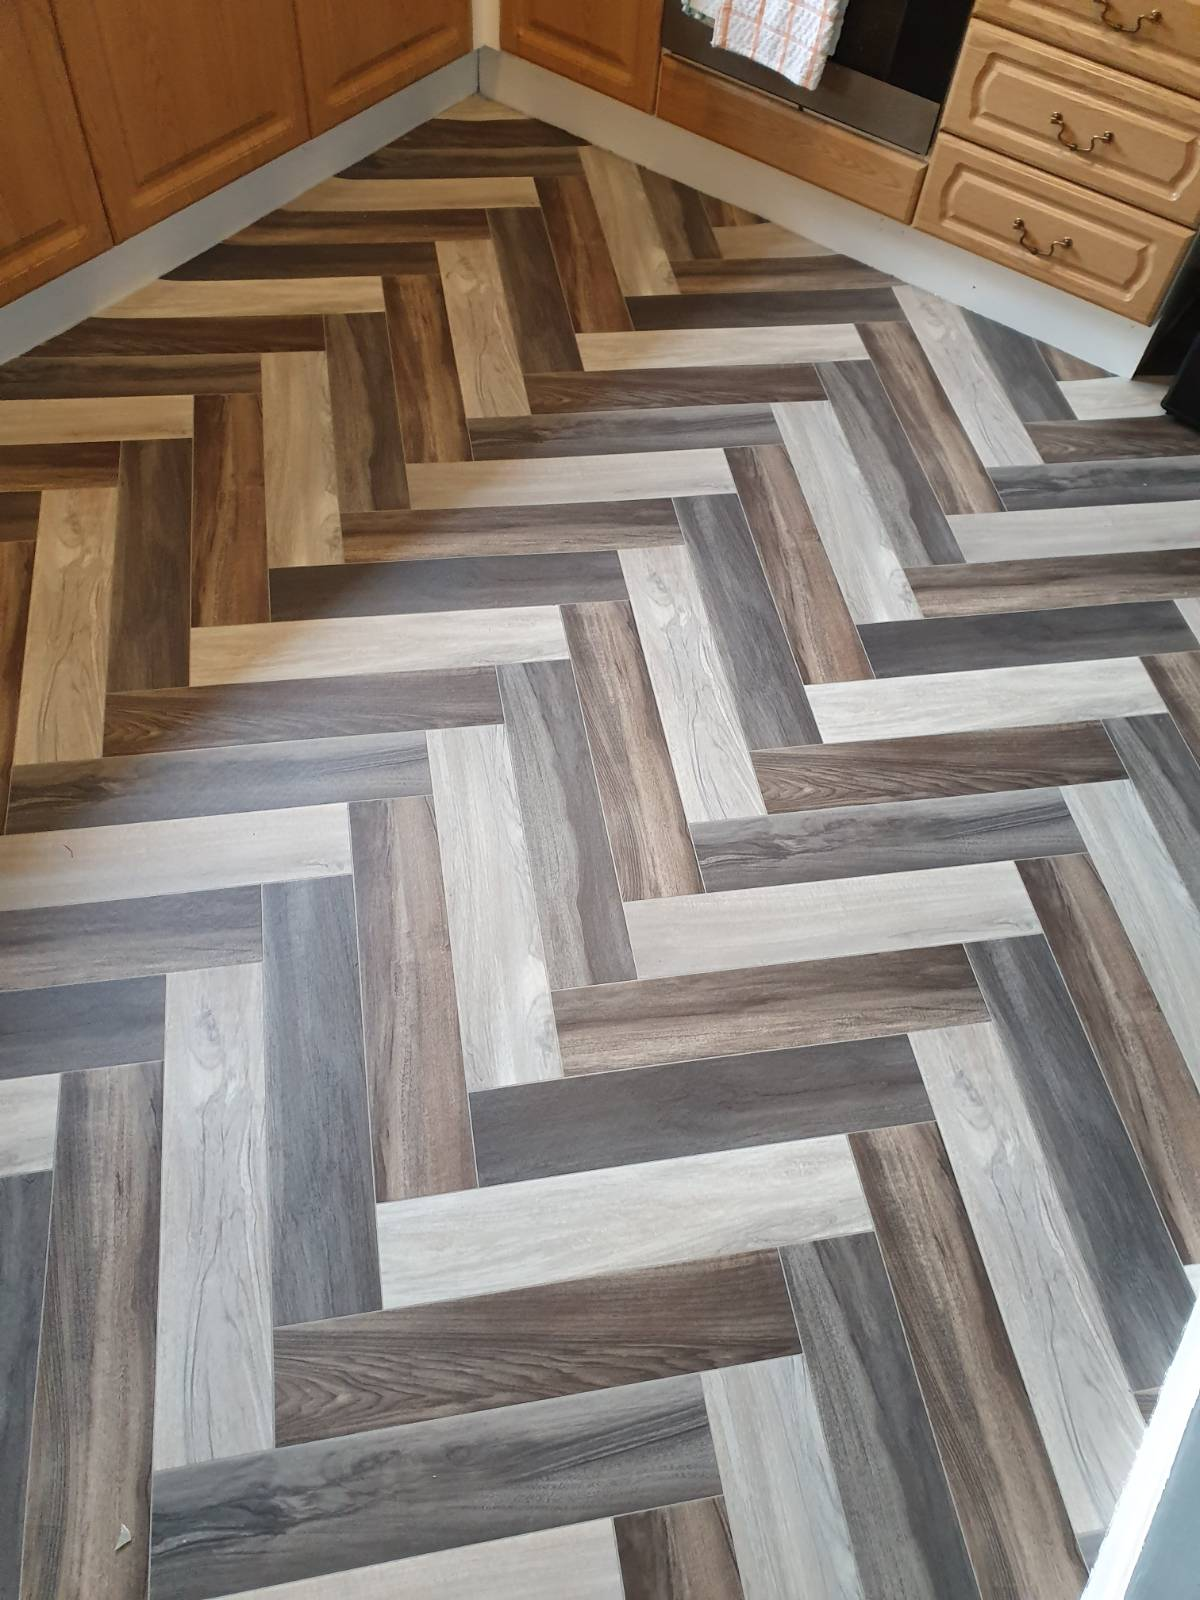 diagonal shaped vinyl flooring with brown and white colours in kitchen